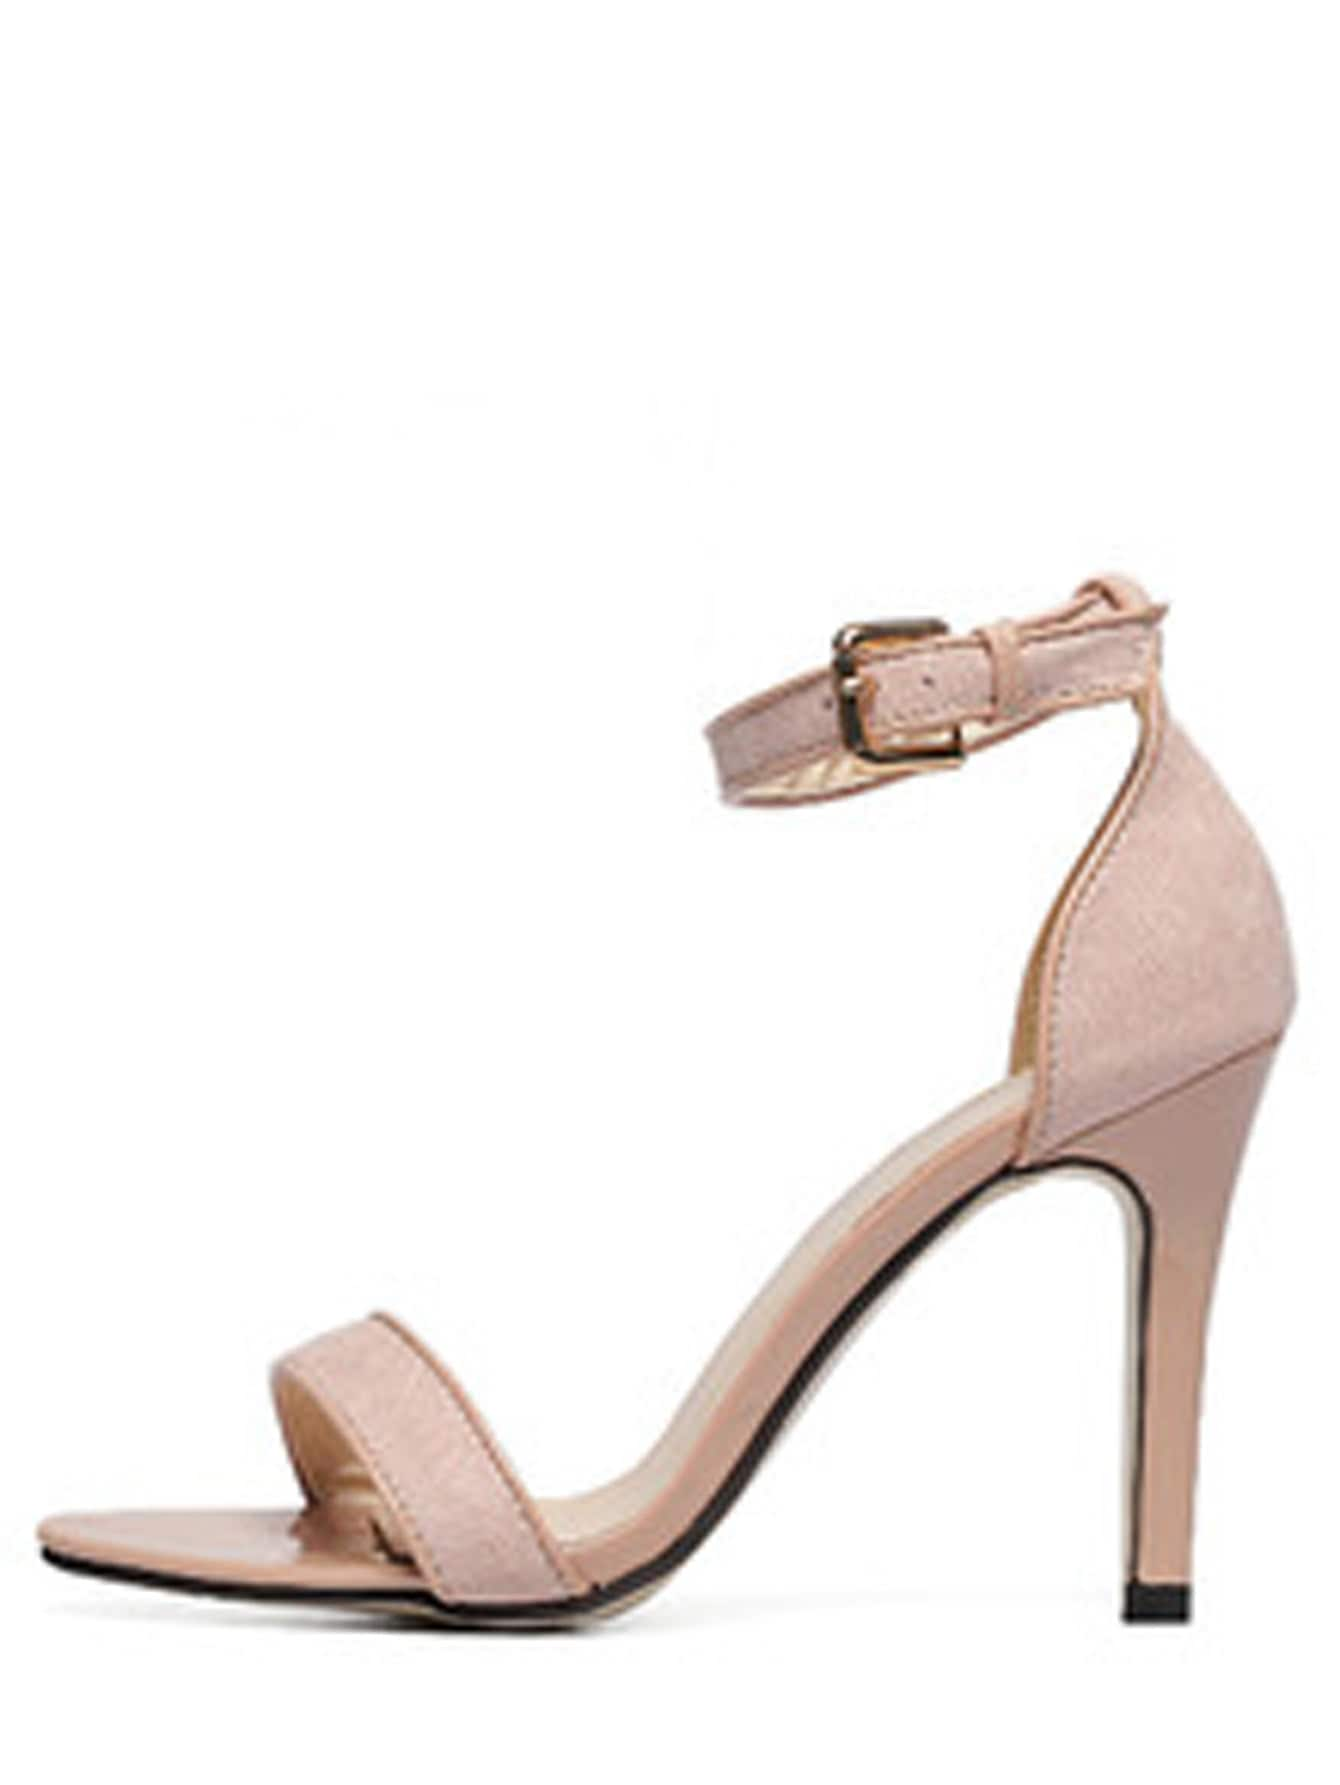 Apricot Open Toe Ankle Strap High Stiletto Sandals woman high heels sandals gold chains sandals lady high heels sandals sexy open toe pumps cut outs dress nightclub shoes b160